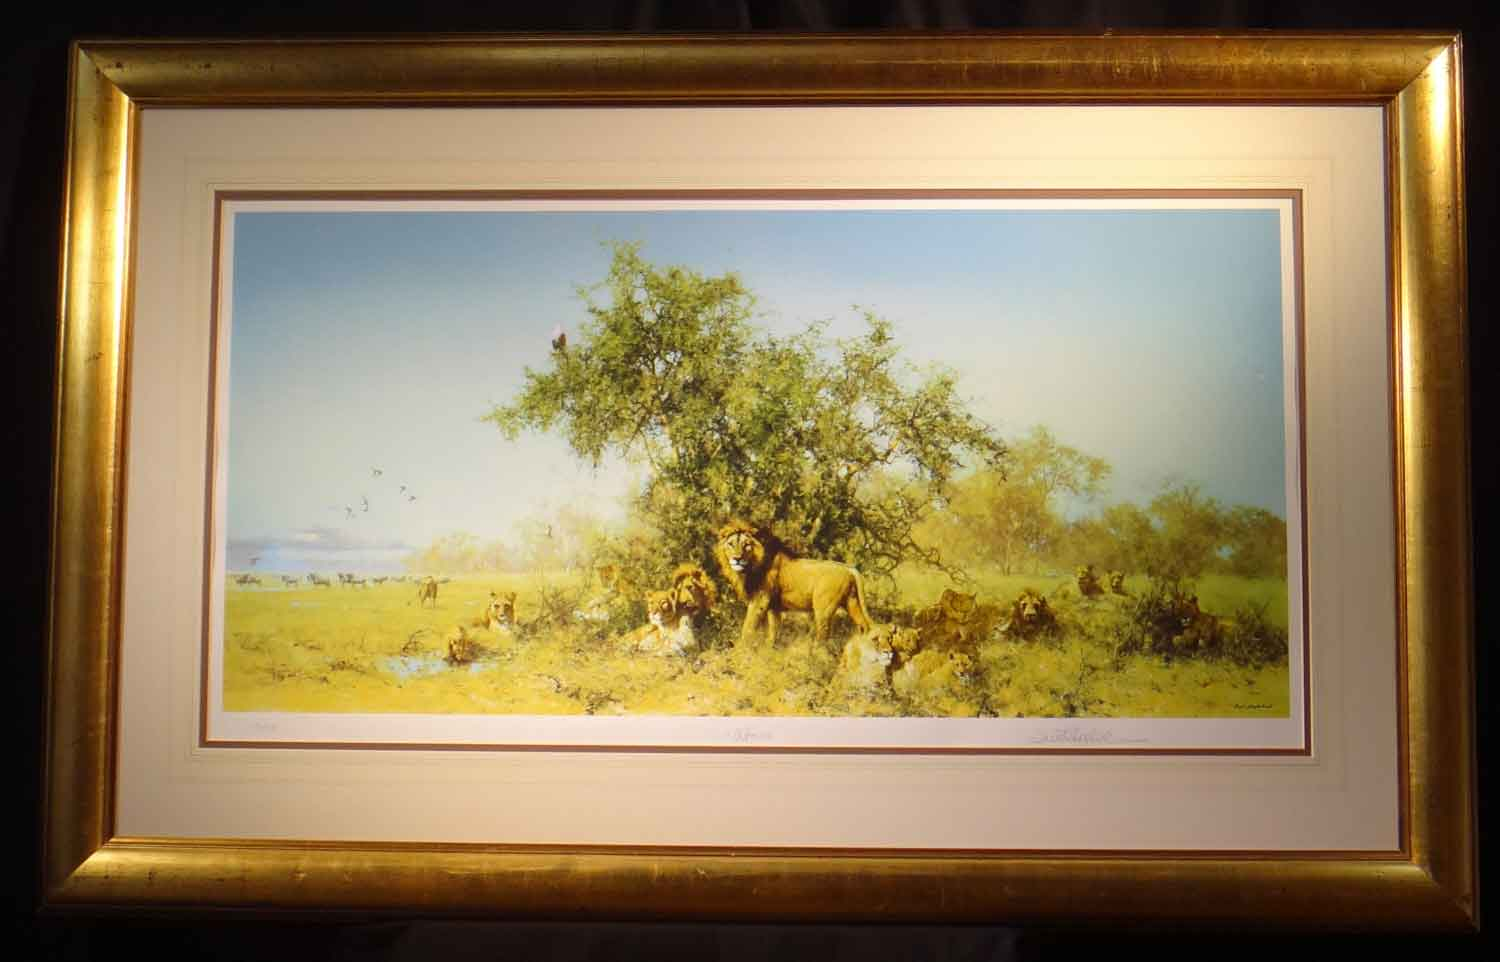 david shepherd  Africa, silkscreen, print, framed